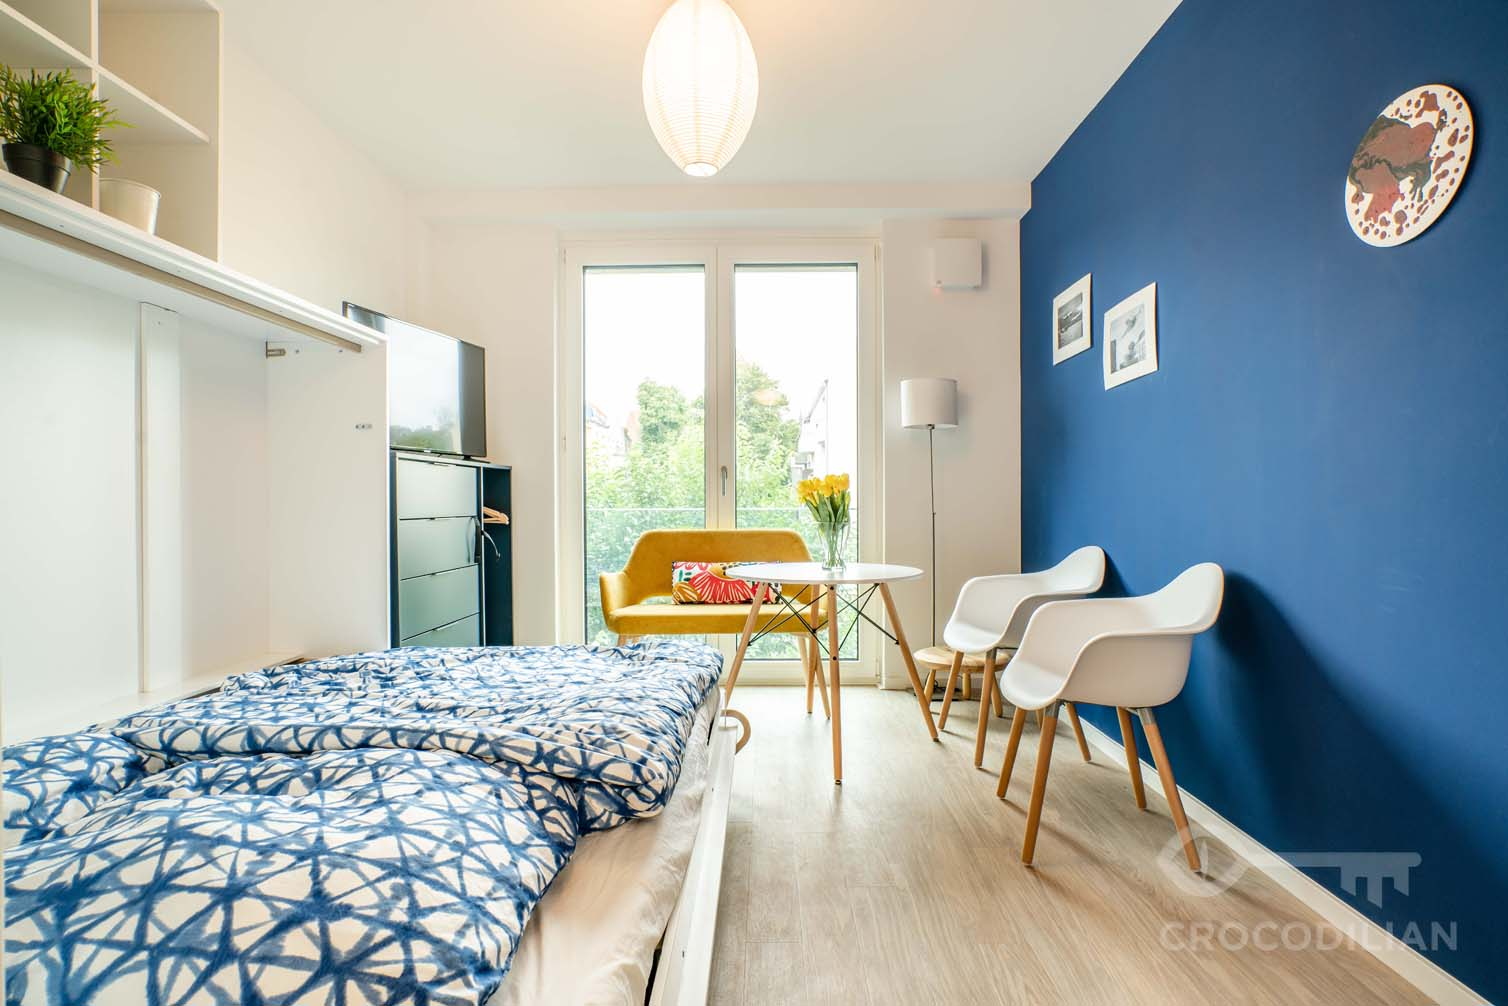 Small & furnished with all you need: Studio close to Tempelhofer Feld